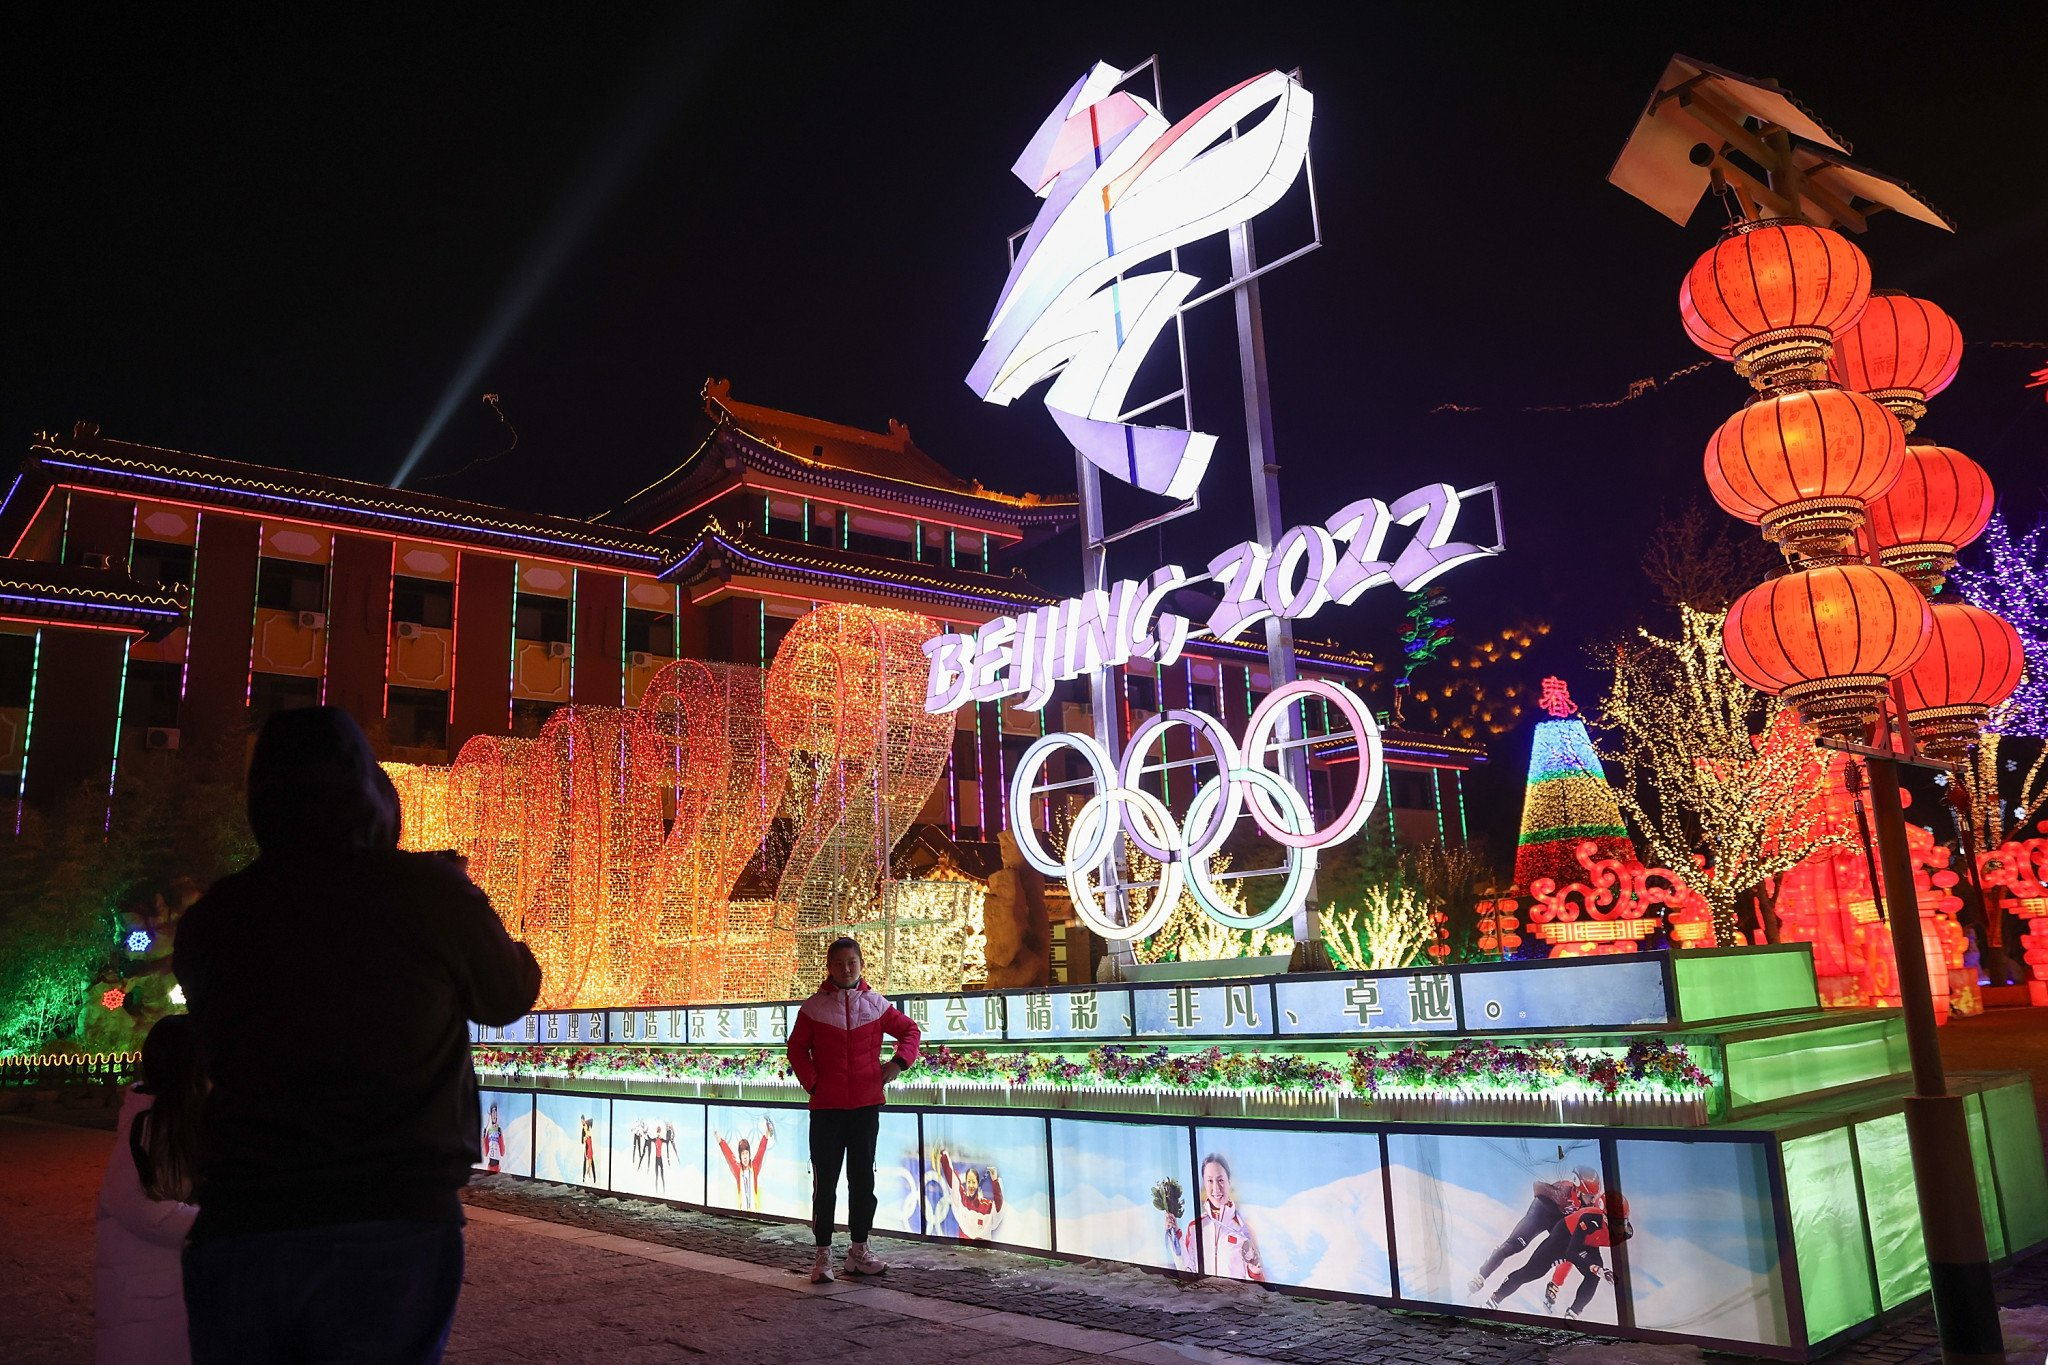 China is looking to improve in winter sports where it does not traditionally excel before Beijing 2022 ©Getty Images